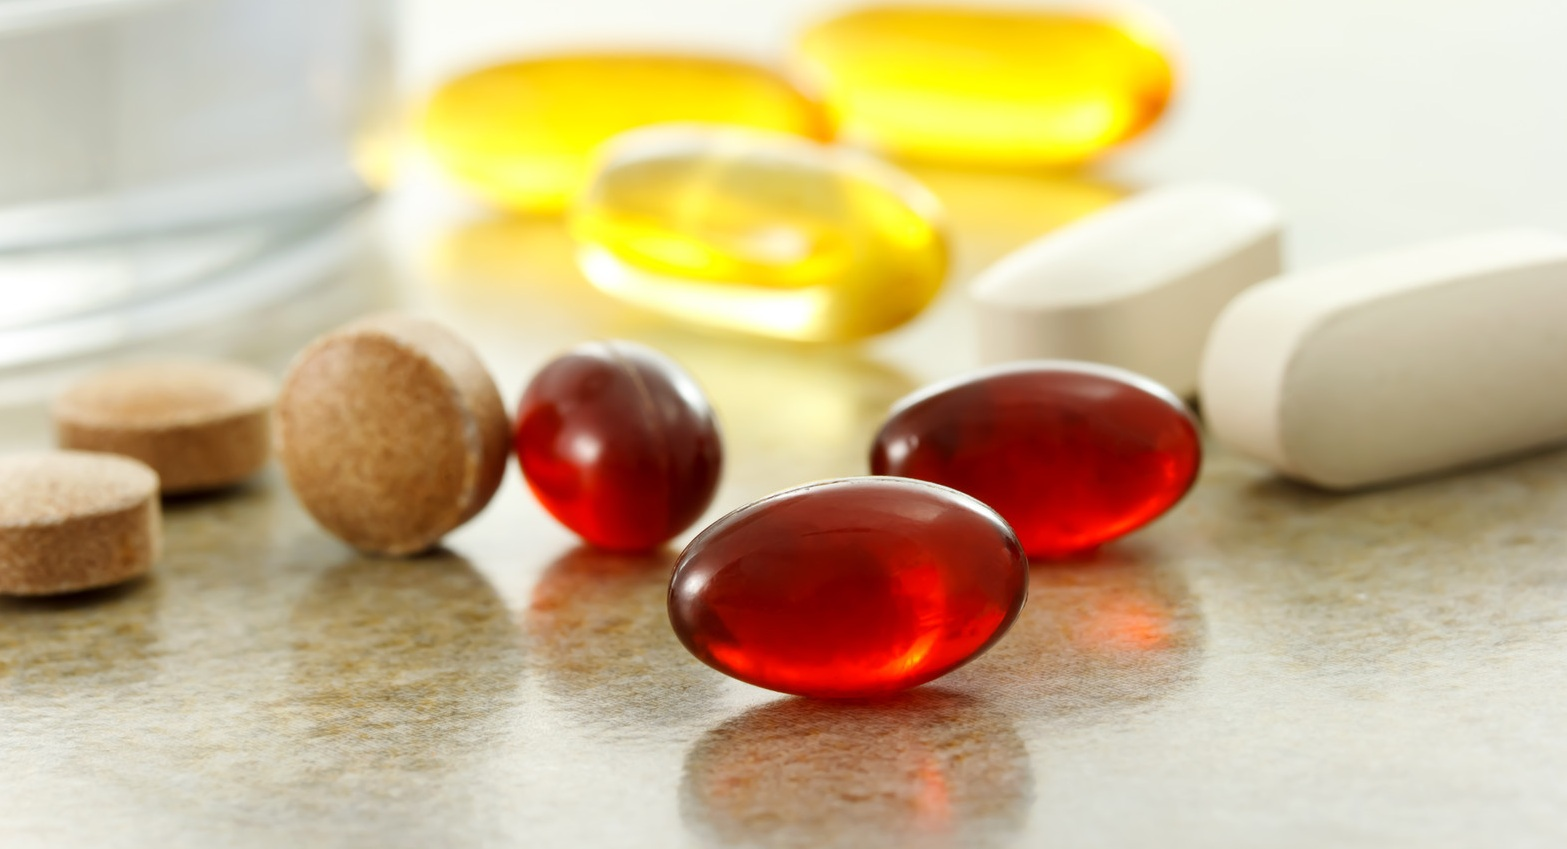 Enormous Opportunities For Nutraceutical Key Players: Global Nutraceuticals Market